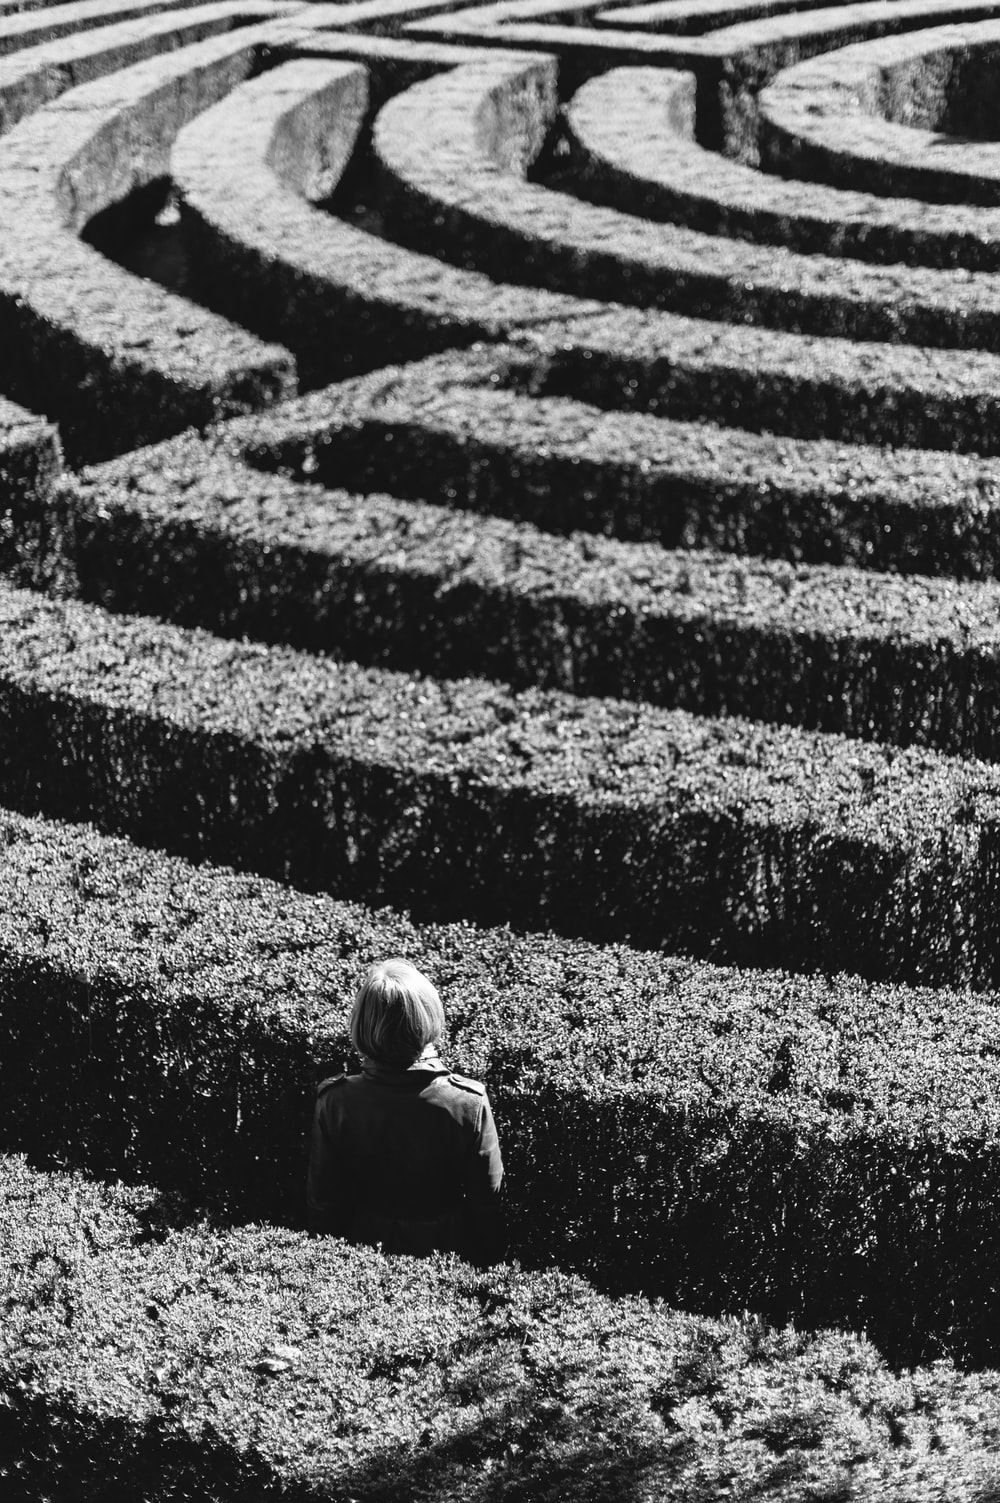 grayscale photo of person inside the plant formation